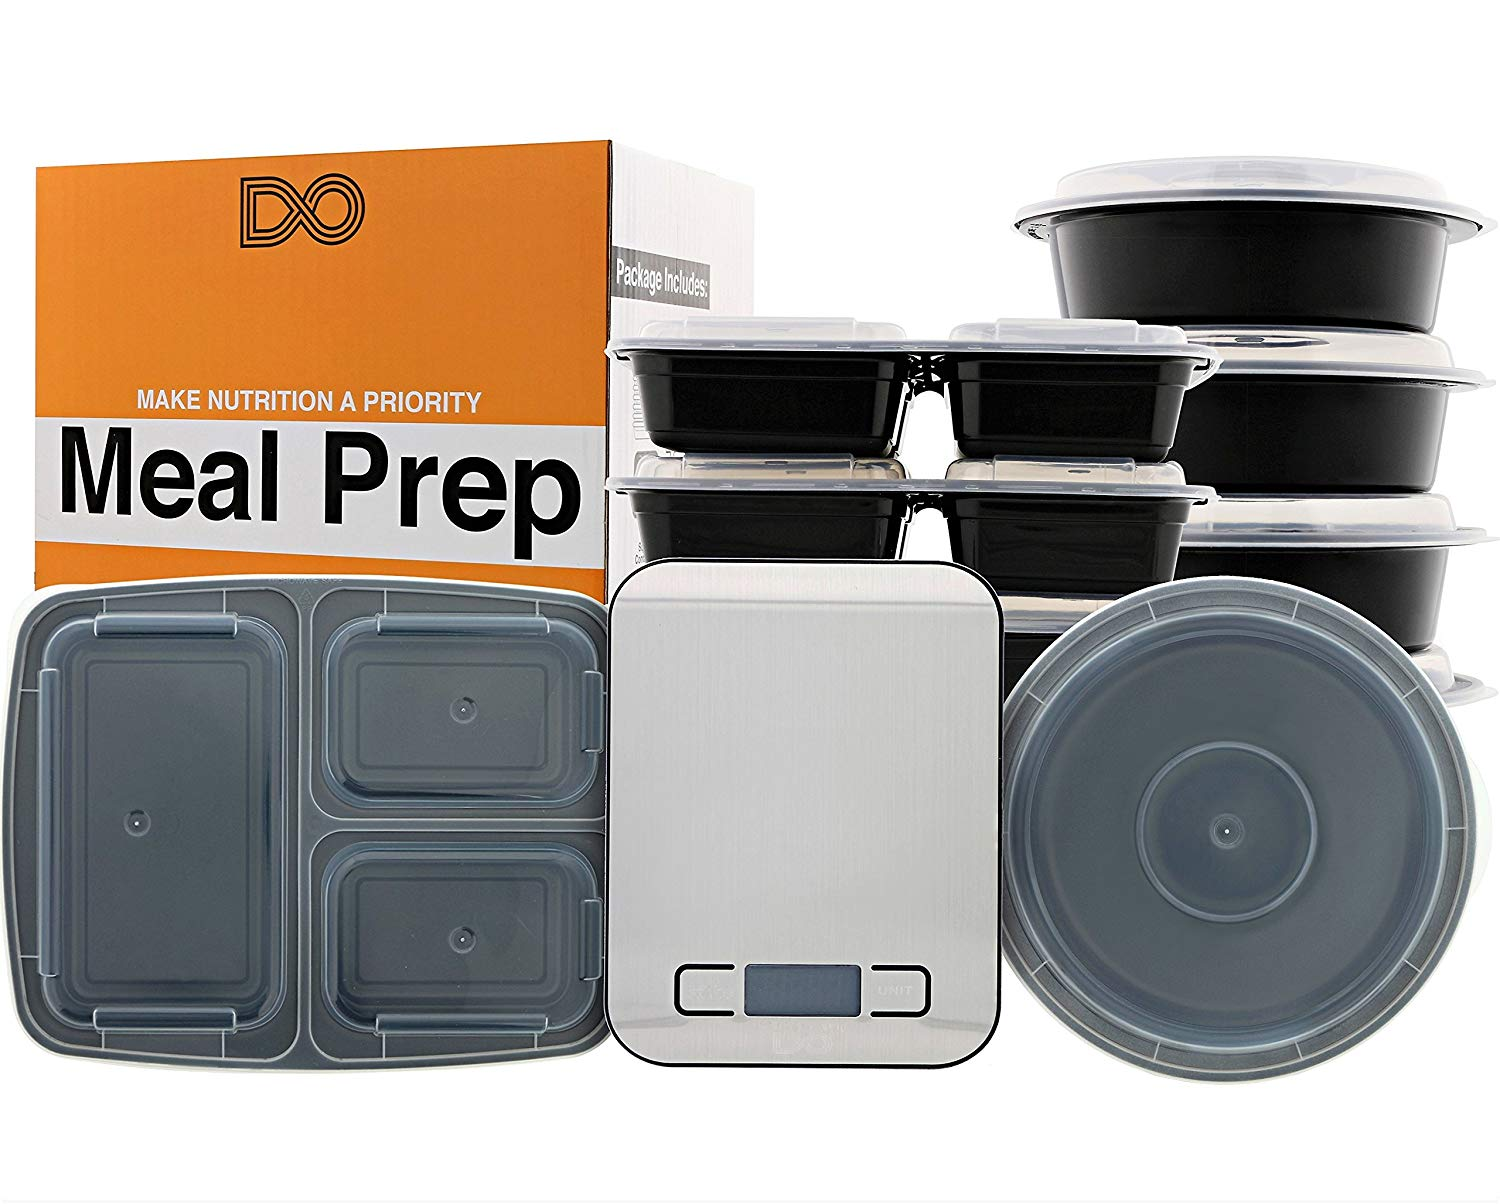 Meal Prep Set - [BUNDLE] - Meal Prep Containers and Food Scale - Package Includes: (7) - 3 Compartment Meal Prep Containers, (7) - Meal Prep Bowls, (1) - Kitchen Scale